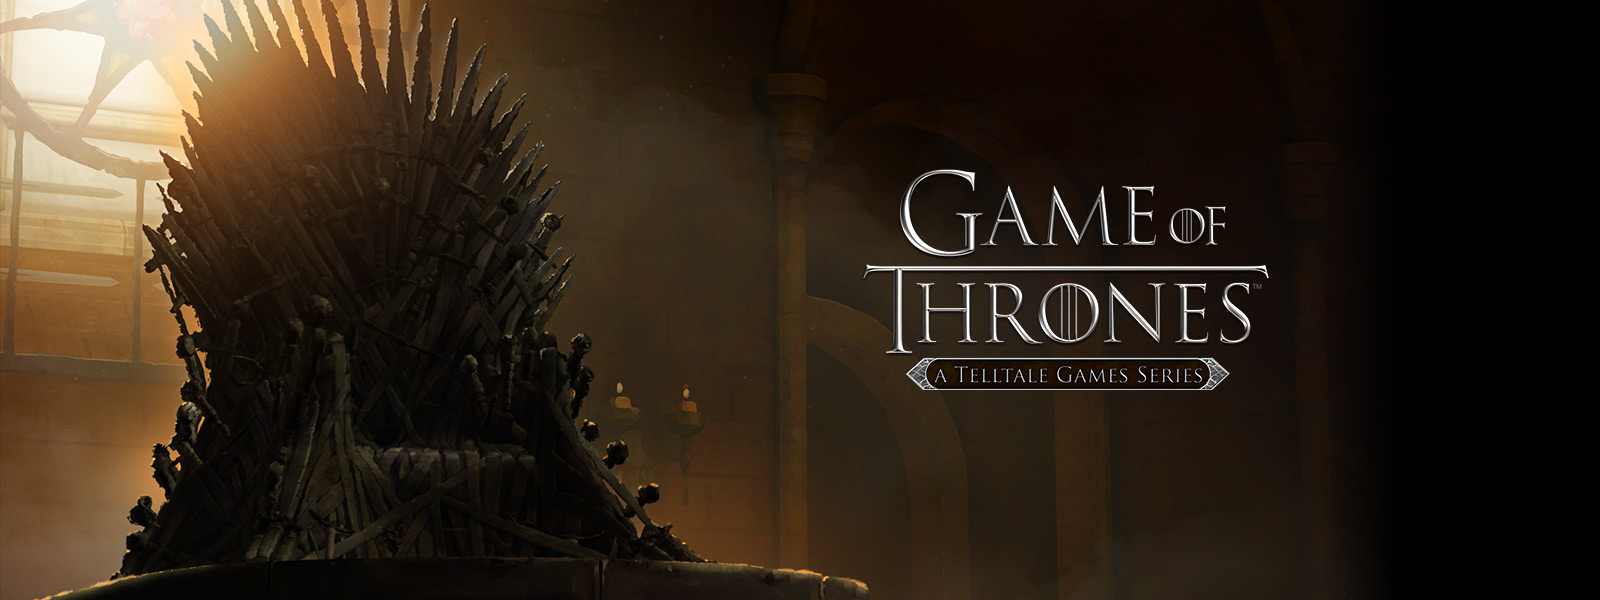 Games of Thrones 的鐵王座